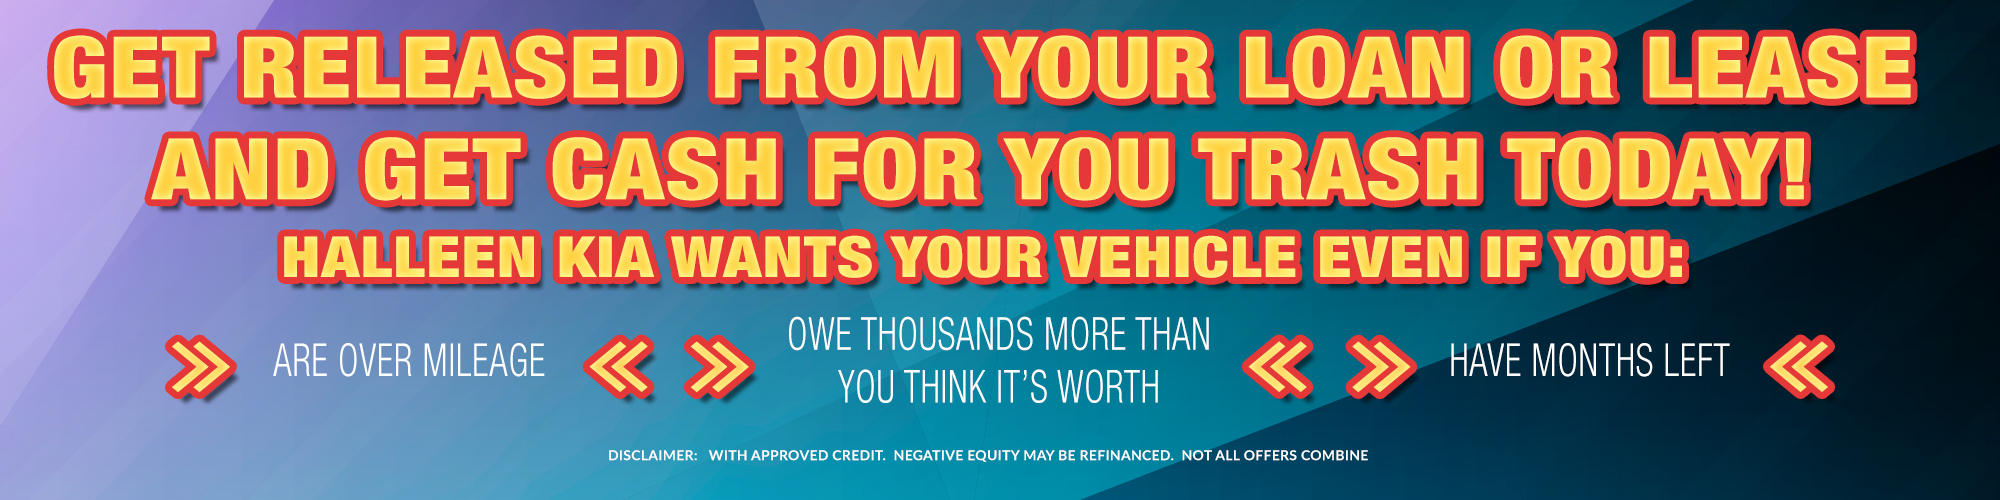 STUCK IN LOAN OR LEASE AND WANT TO BE RELEASED?  HALLEEN KIA WANTS YOUR TRADE EVEN IF YOU'RE OVER MILEAGE OR OWE UP TO $6,000 MORE THAN YOUR TRADES WORTH!